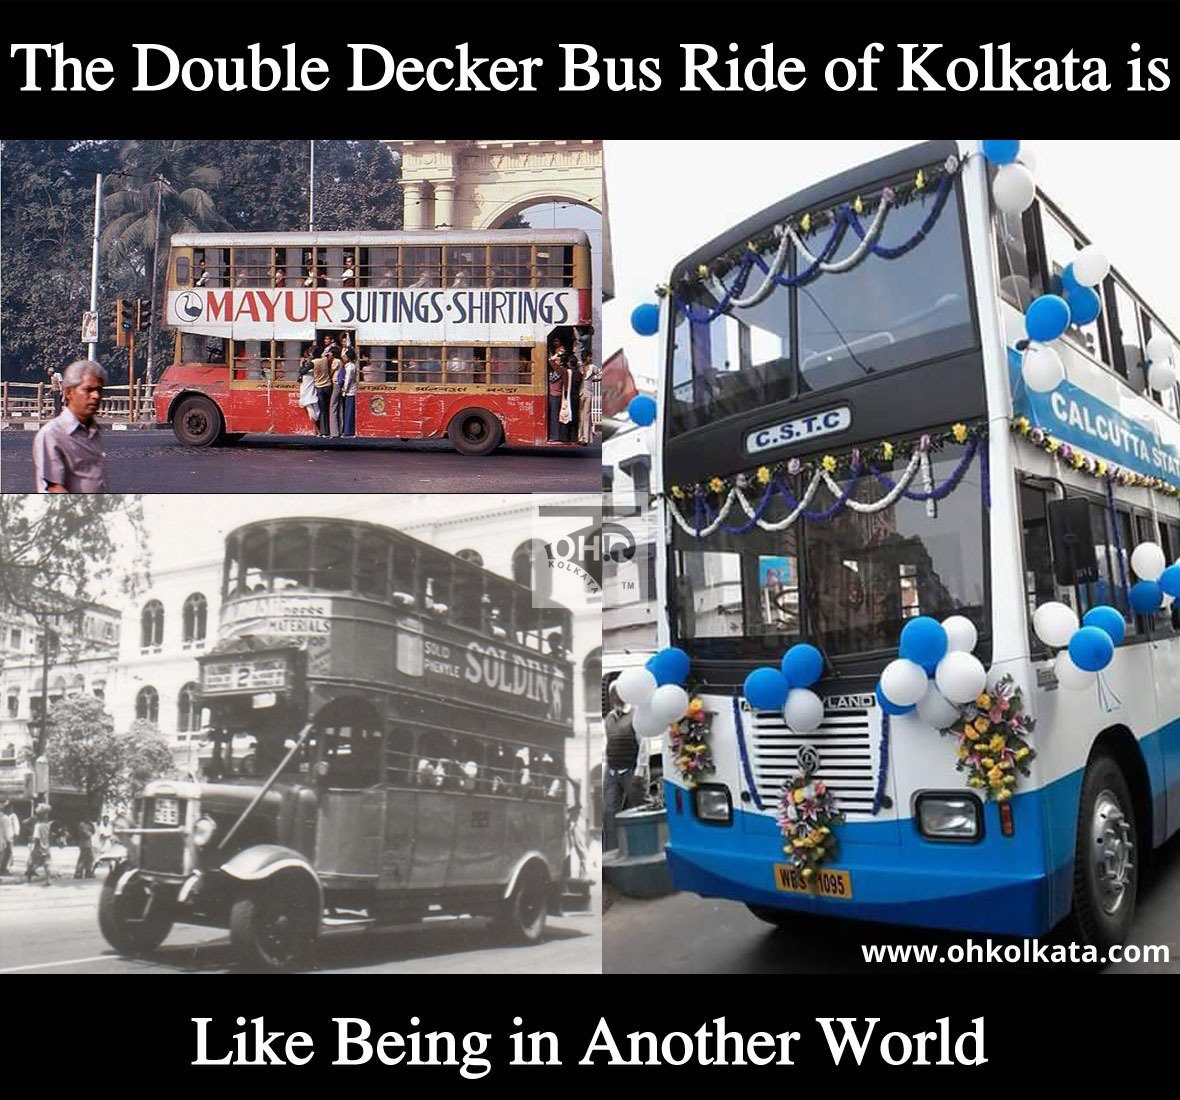 A simple journey feels like a road trip with the Double Decker Bus of Kolkata.... #ohkolkata #follobackforfolloback #follobackSeguro<br>http://pic.twitter.com/M5wvWzQwrD